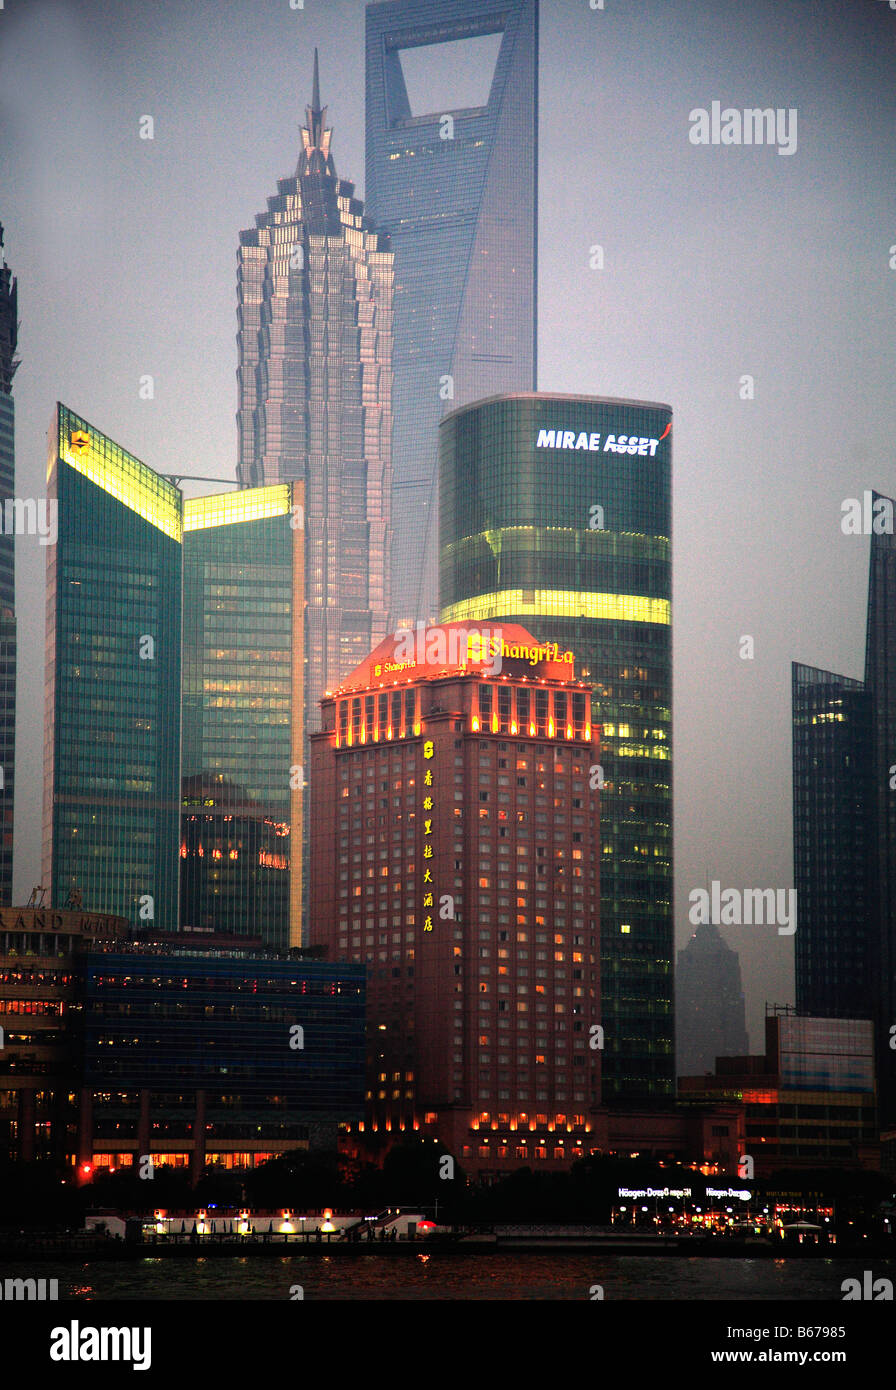 China Shanghai Pudong business district skyline Jinmao Tower World Finance Building - Stock Image